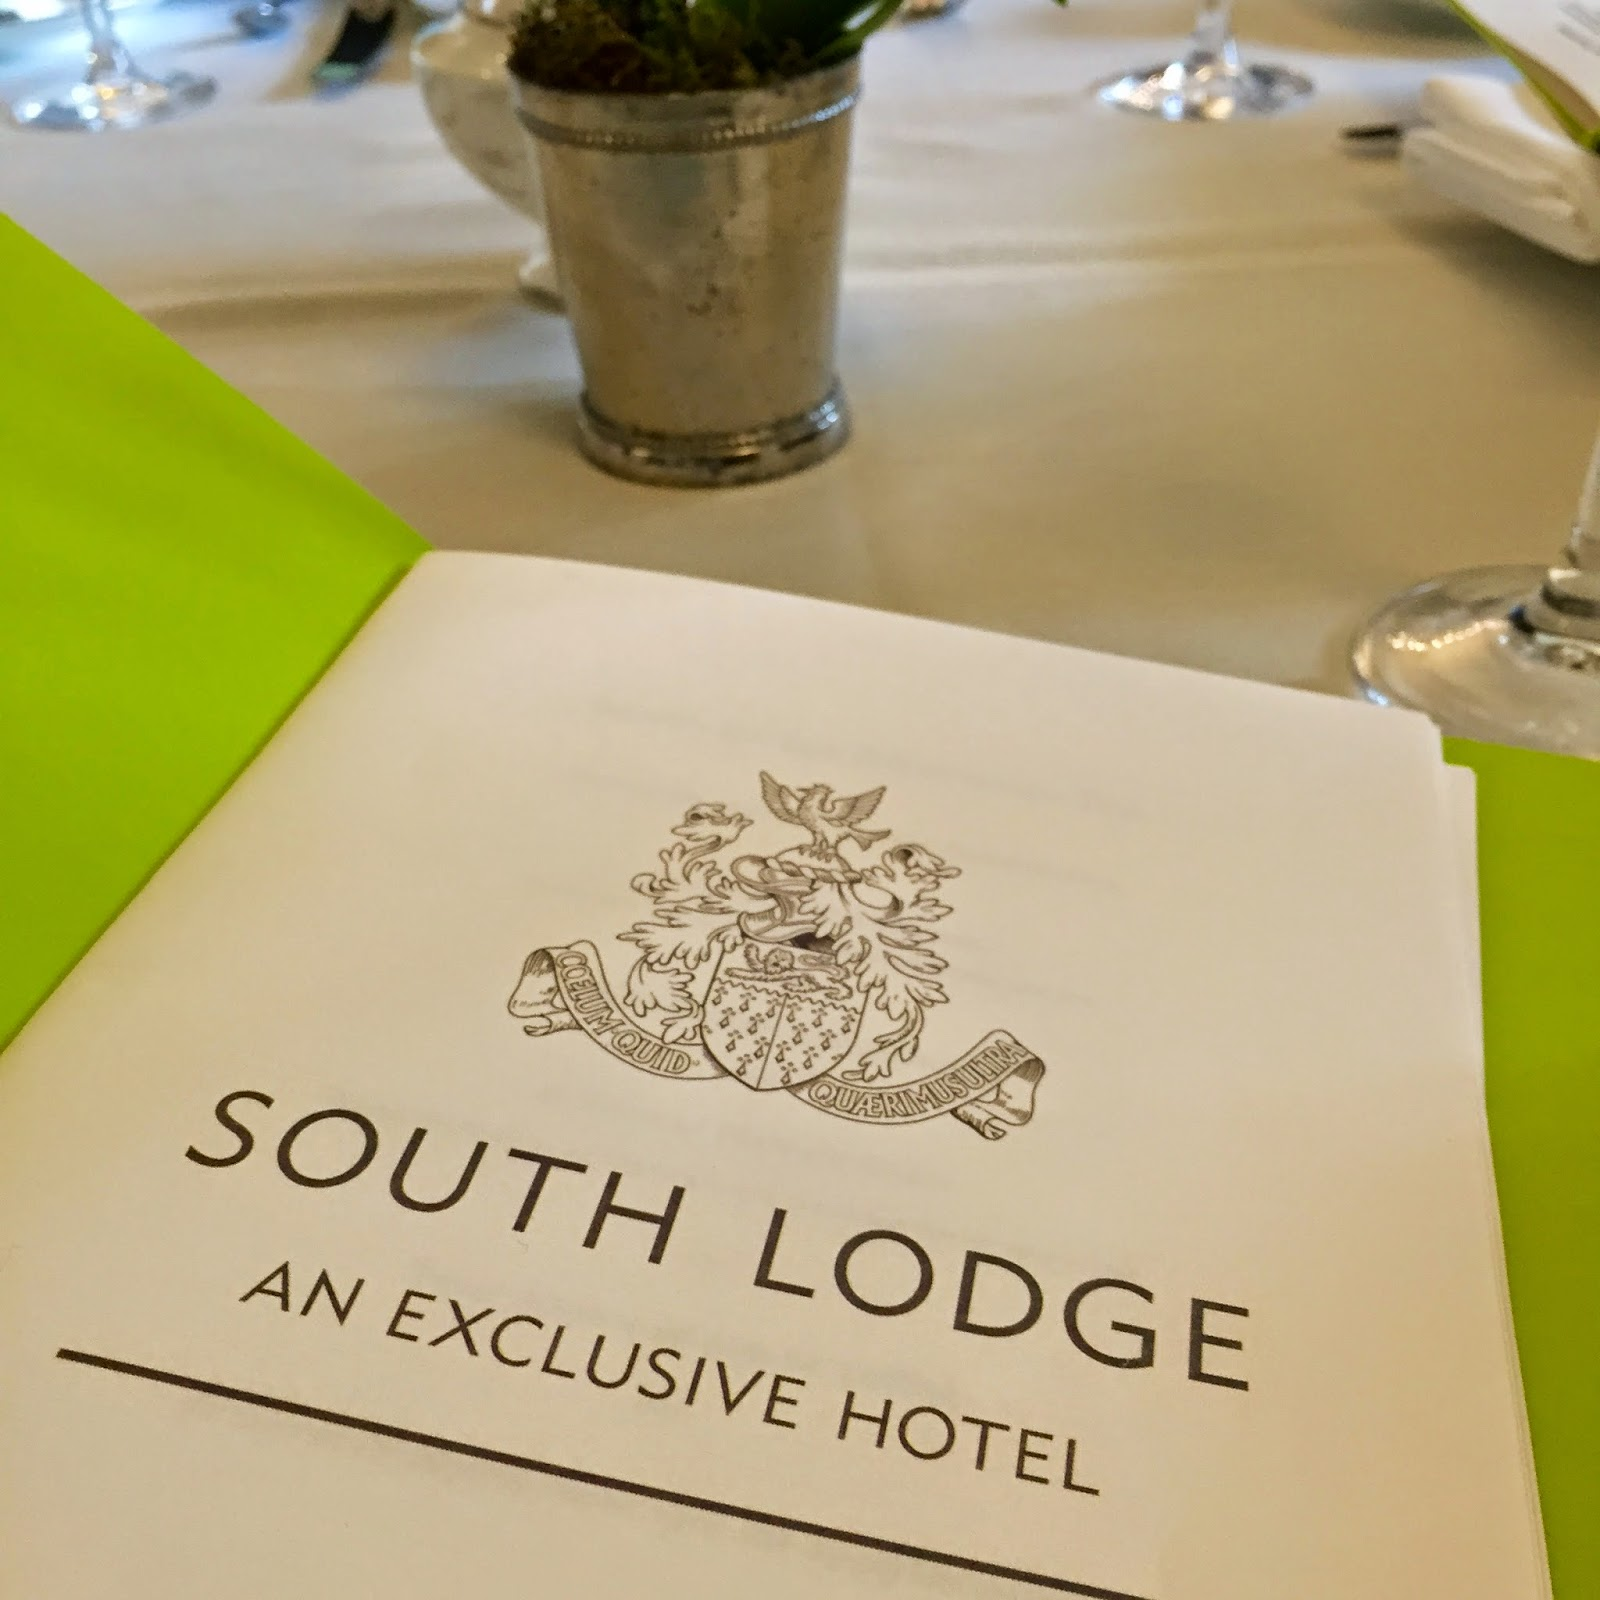 south lodge hotel afternoon tea